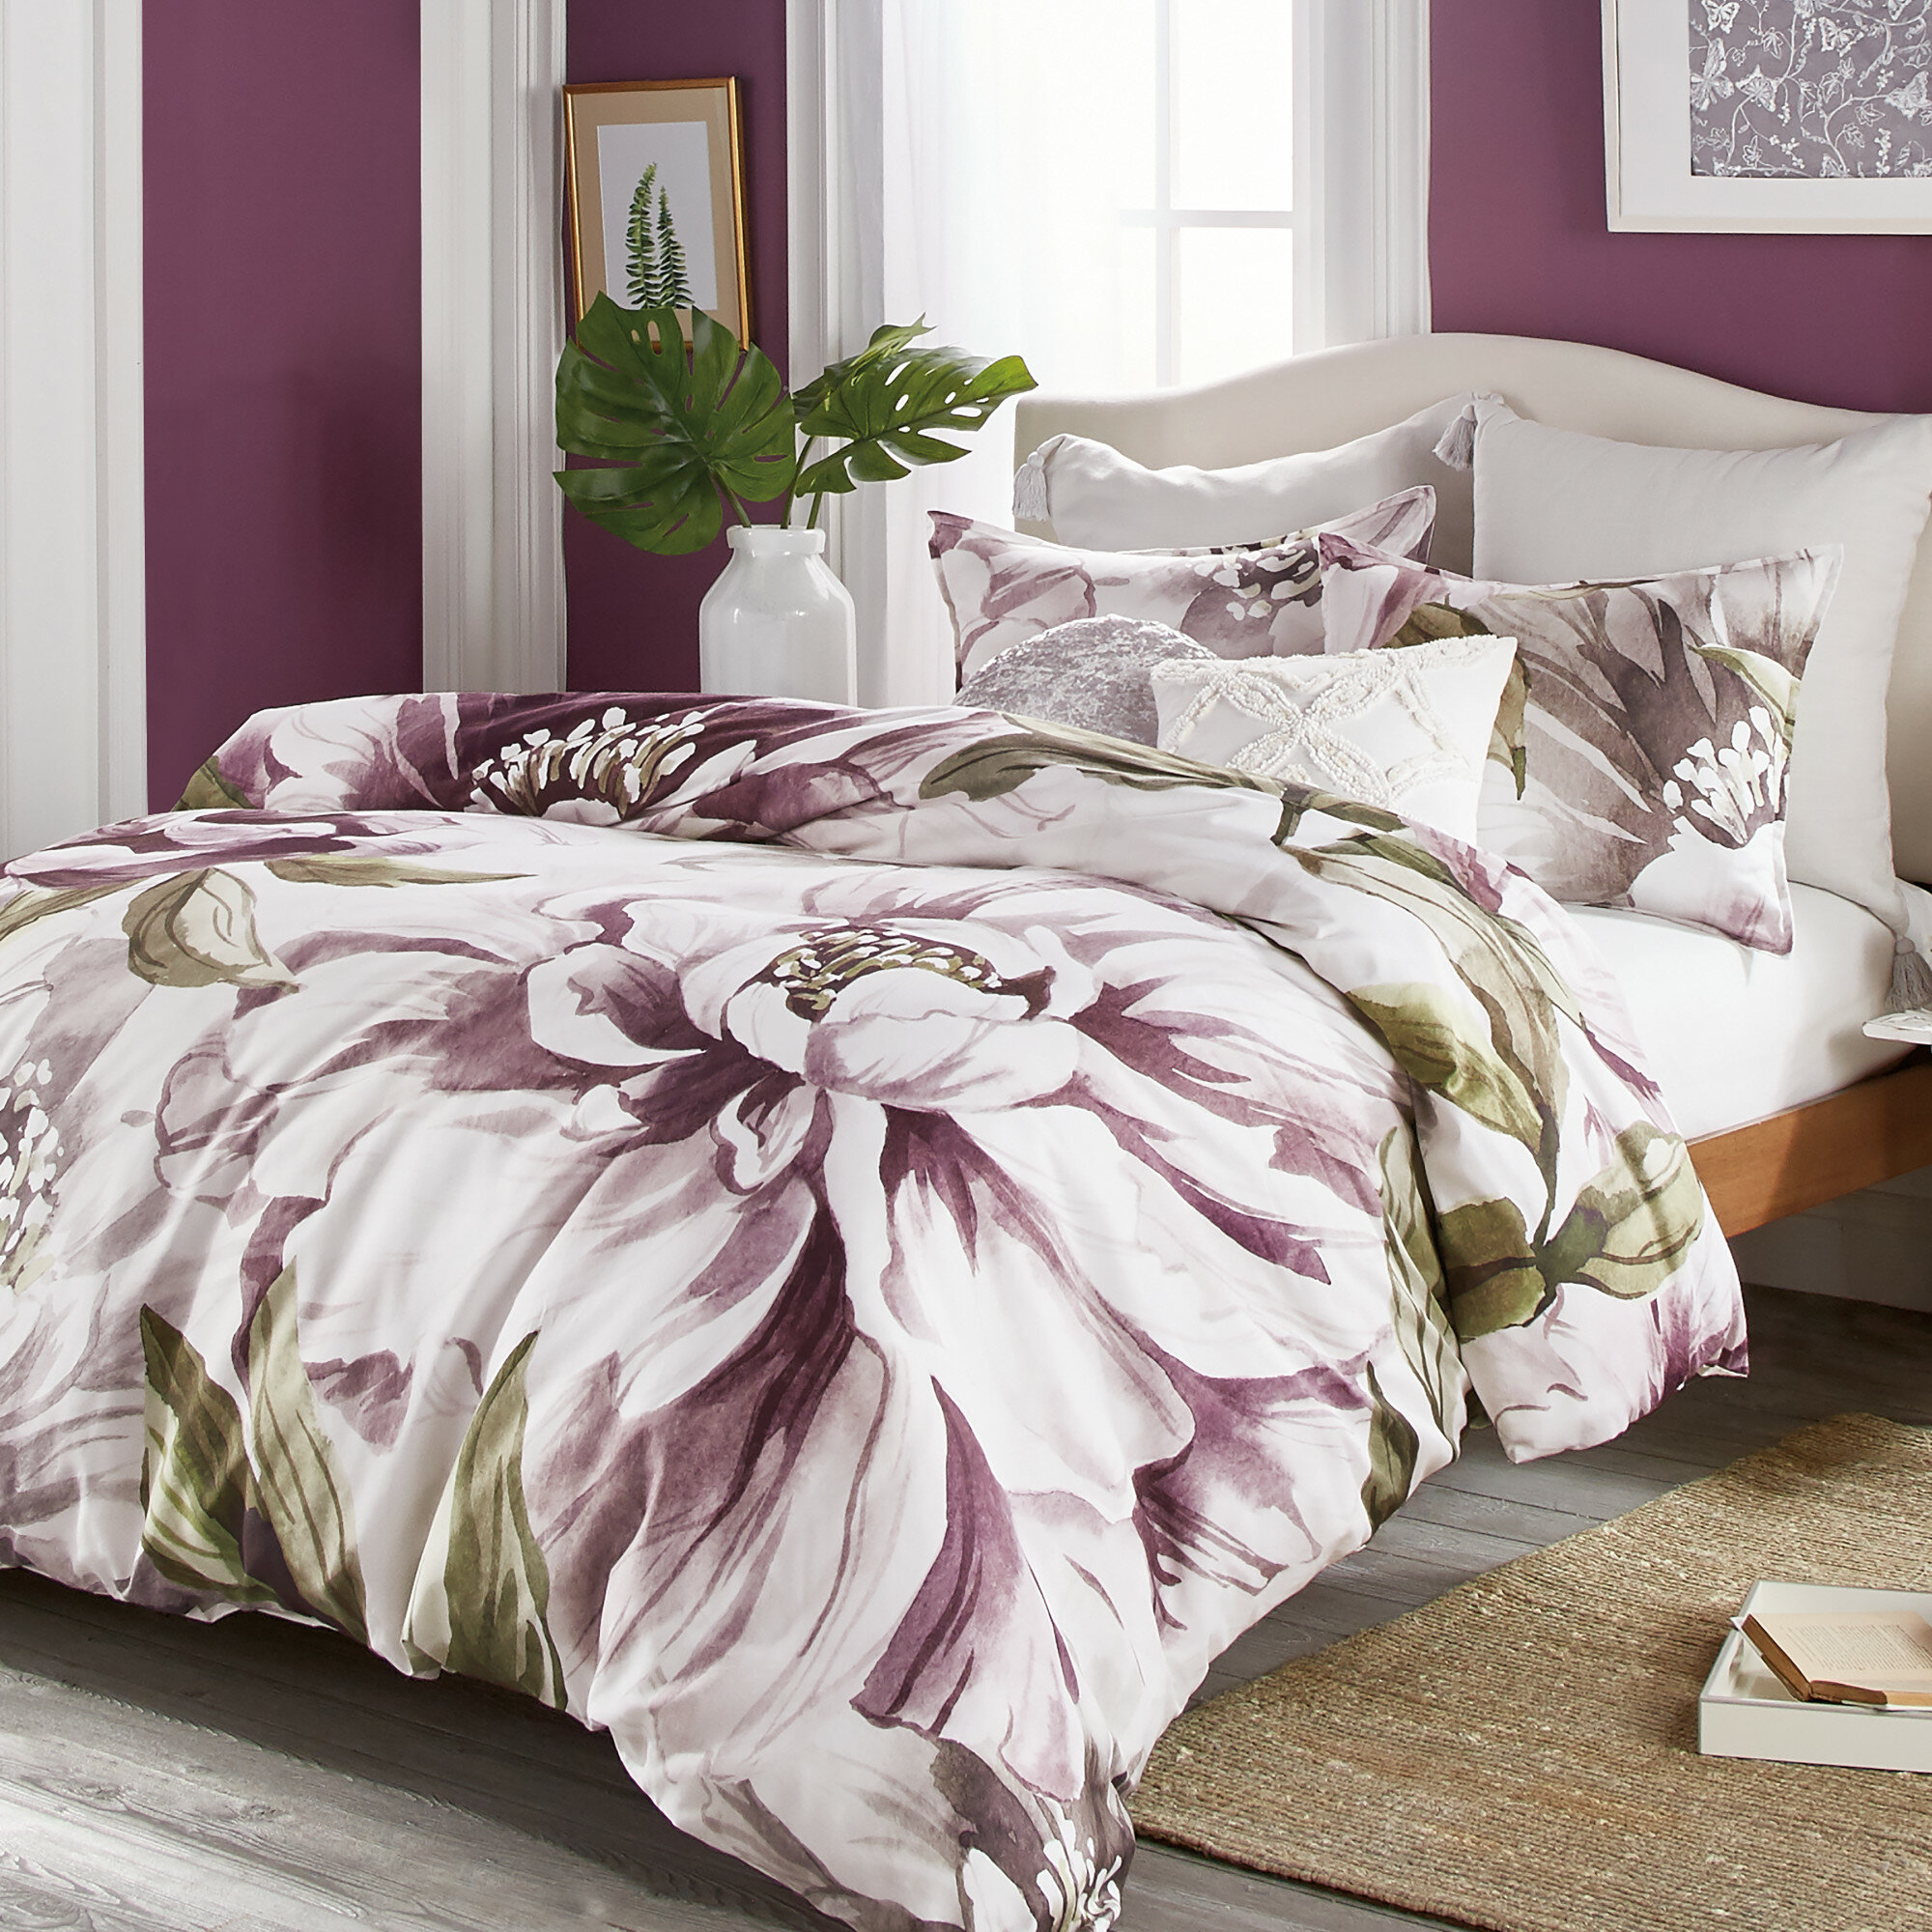 Red Barrel Studio Darielle Floral Comforter Set Wayfair